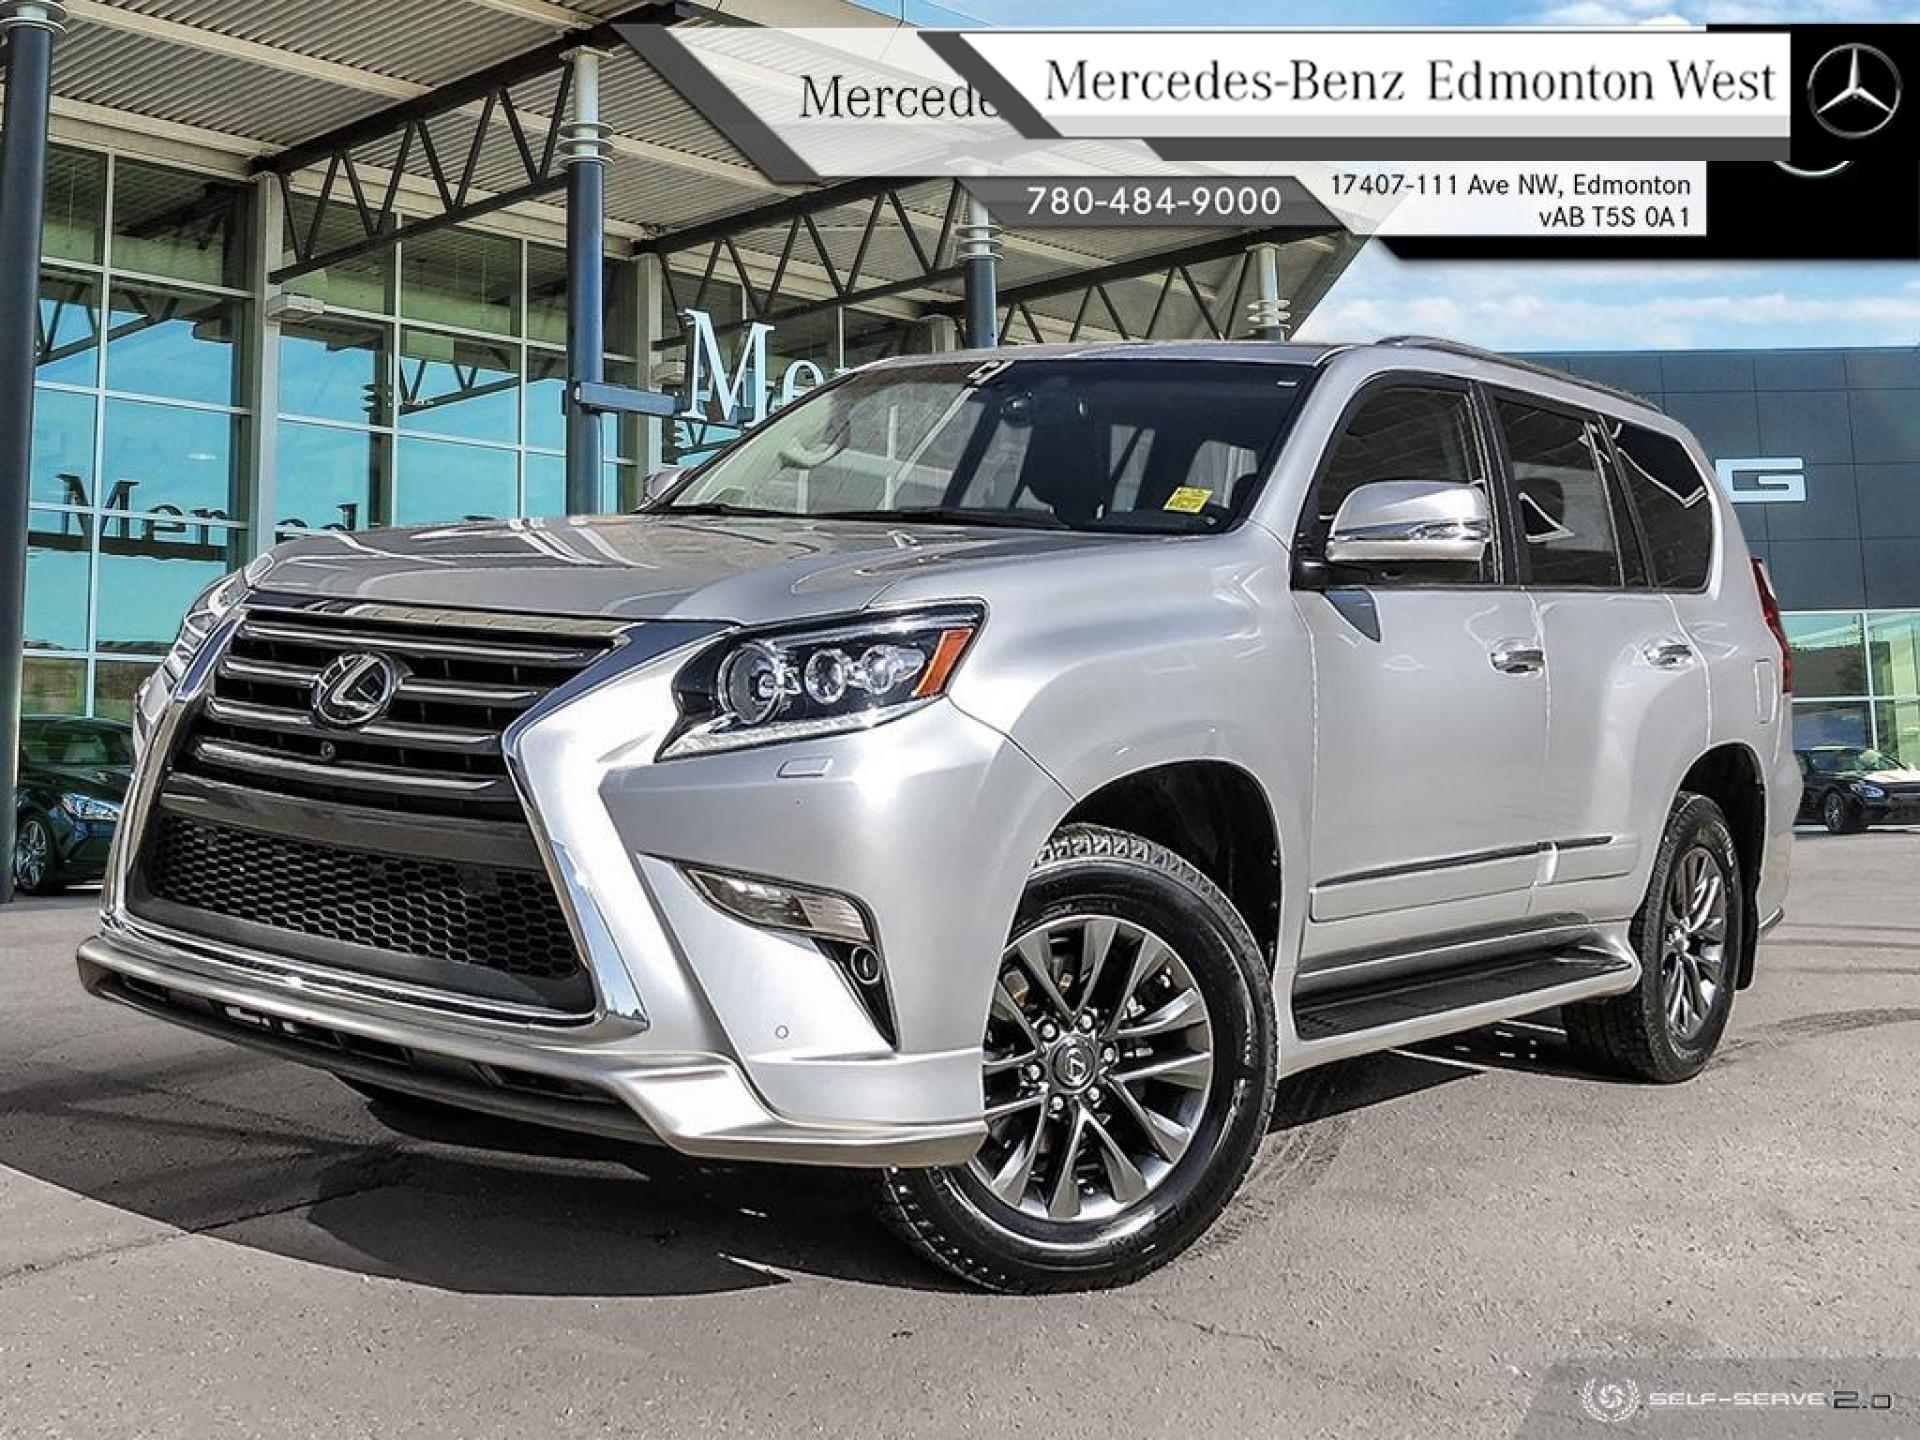 Pre-Owned 2017 Lexus GX 460 Technology Package Local Vehicle, One Owner, 3M, 2 Sets of Tires